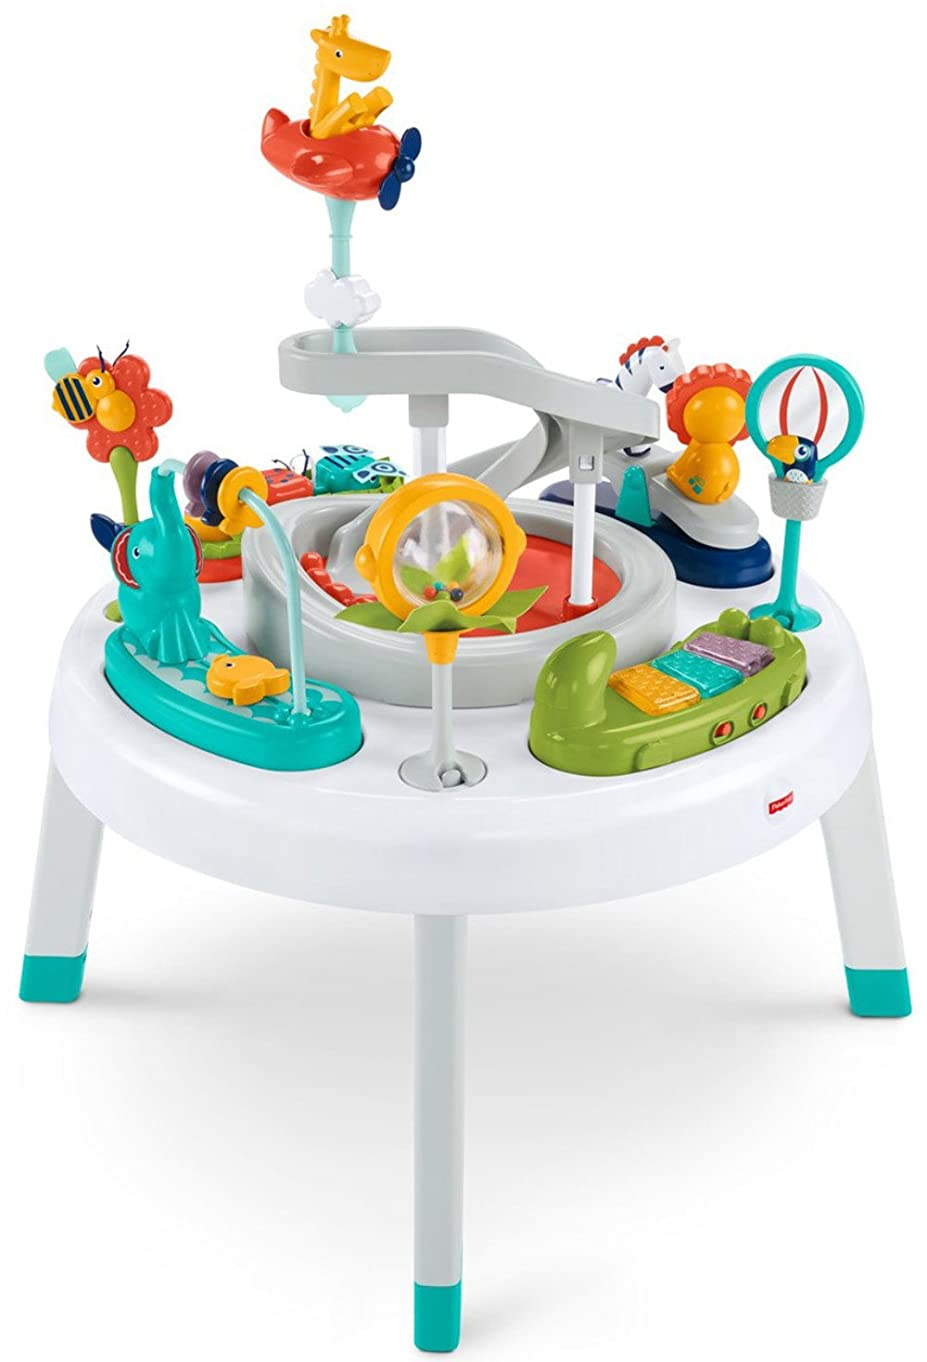 Fisher-Price 2-in-1 Sit-to-Stand Activity Center, Spin 'n Play Safari h86666463